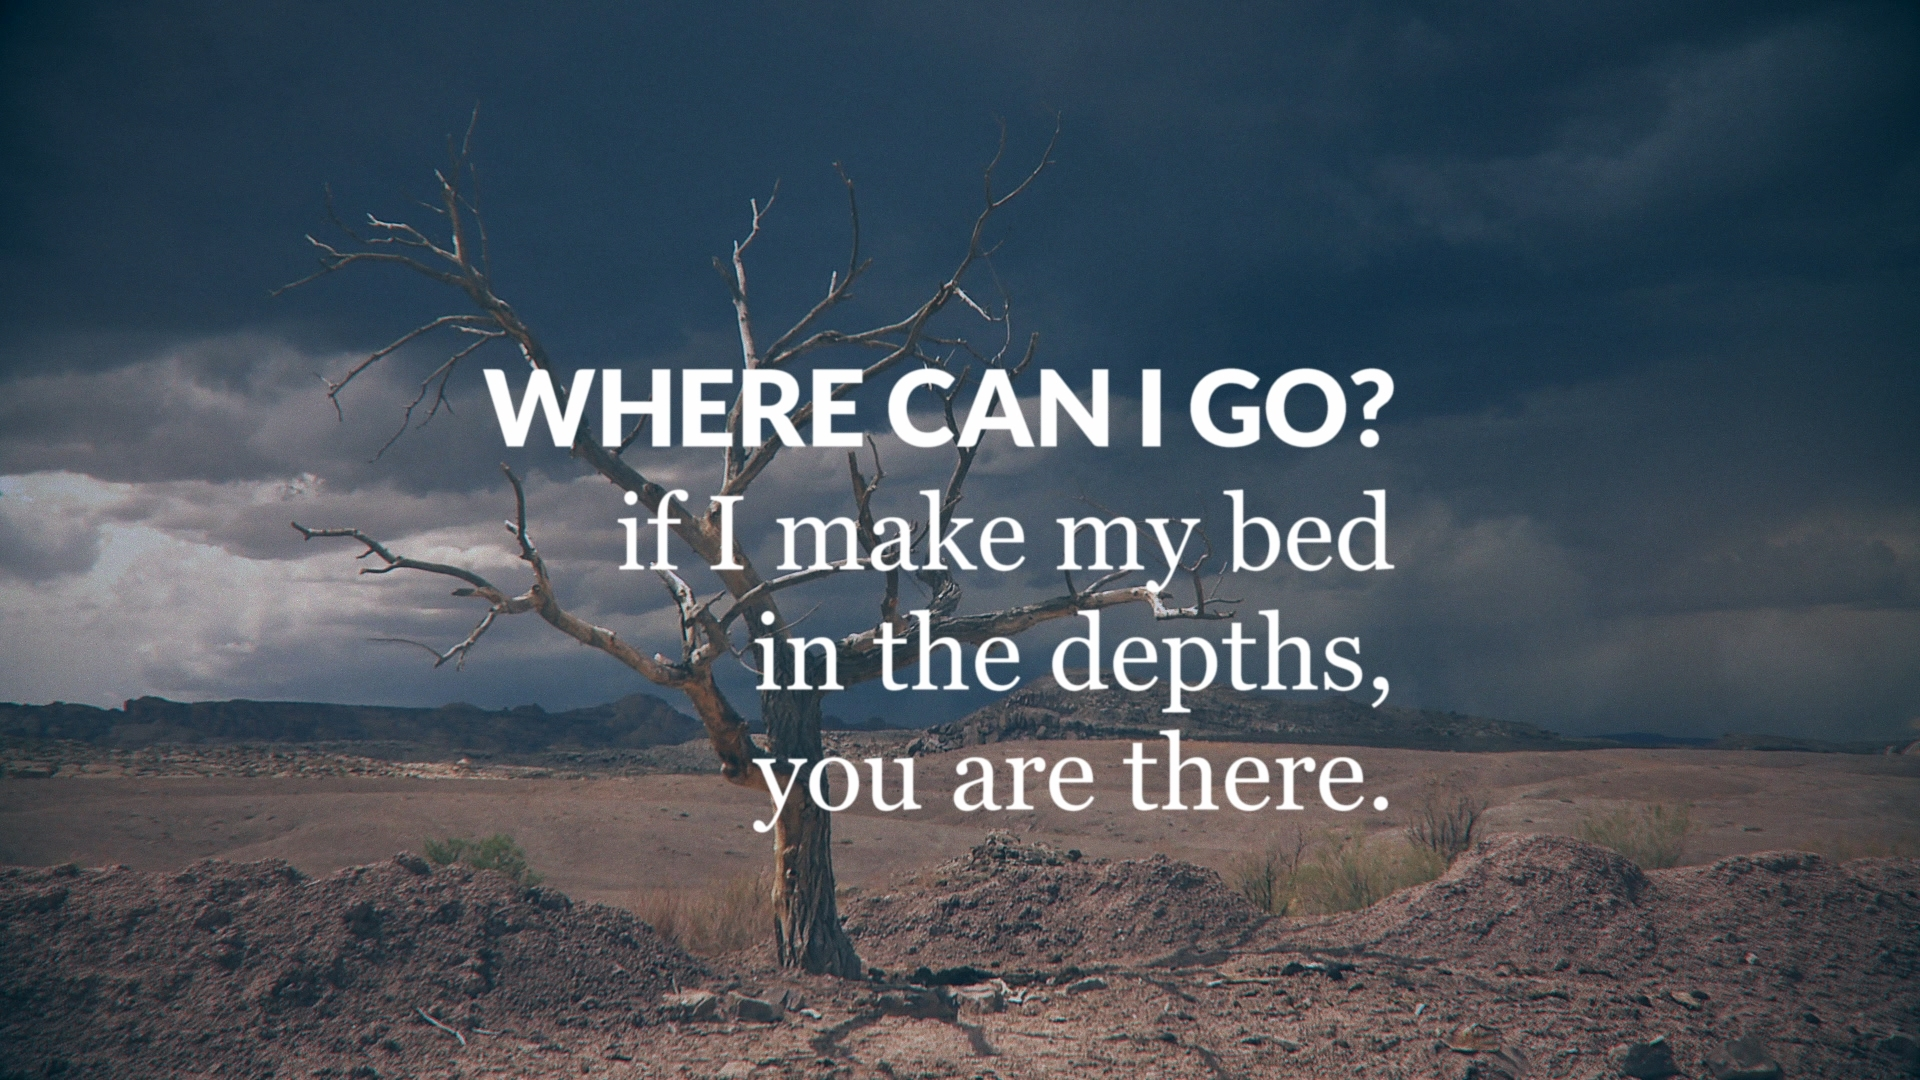 Where Can I Go?